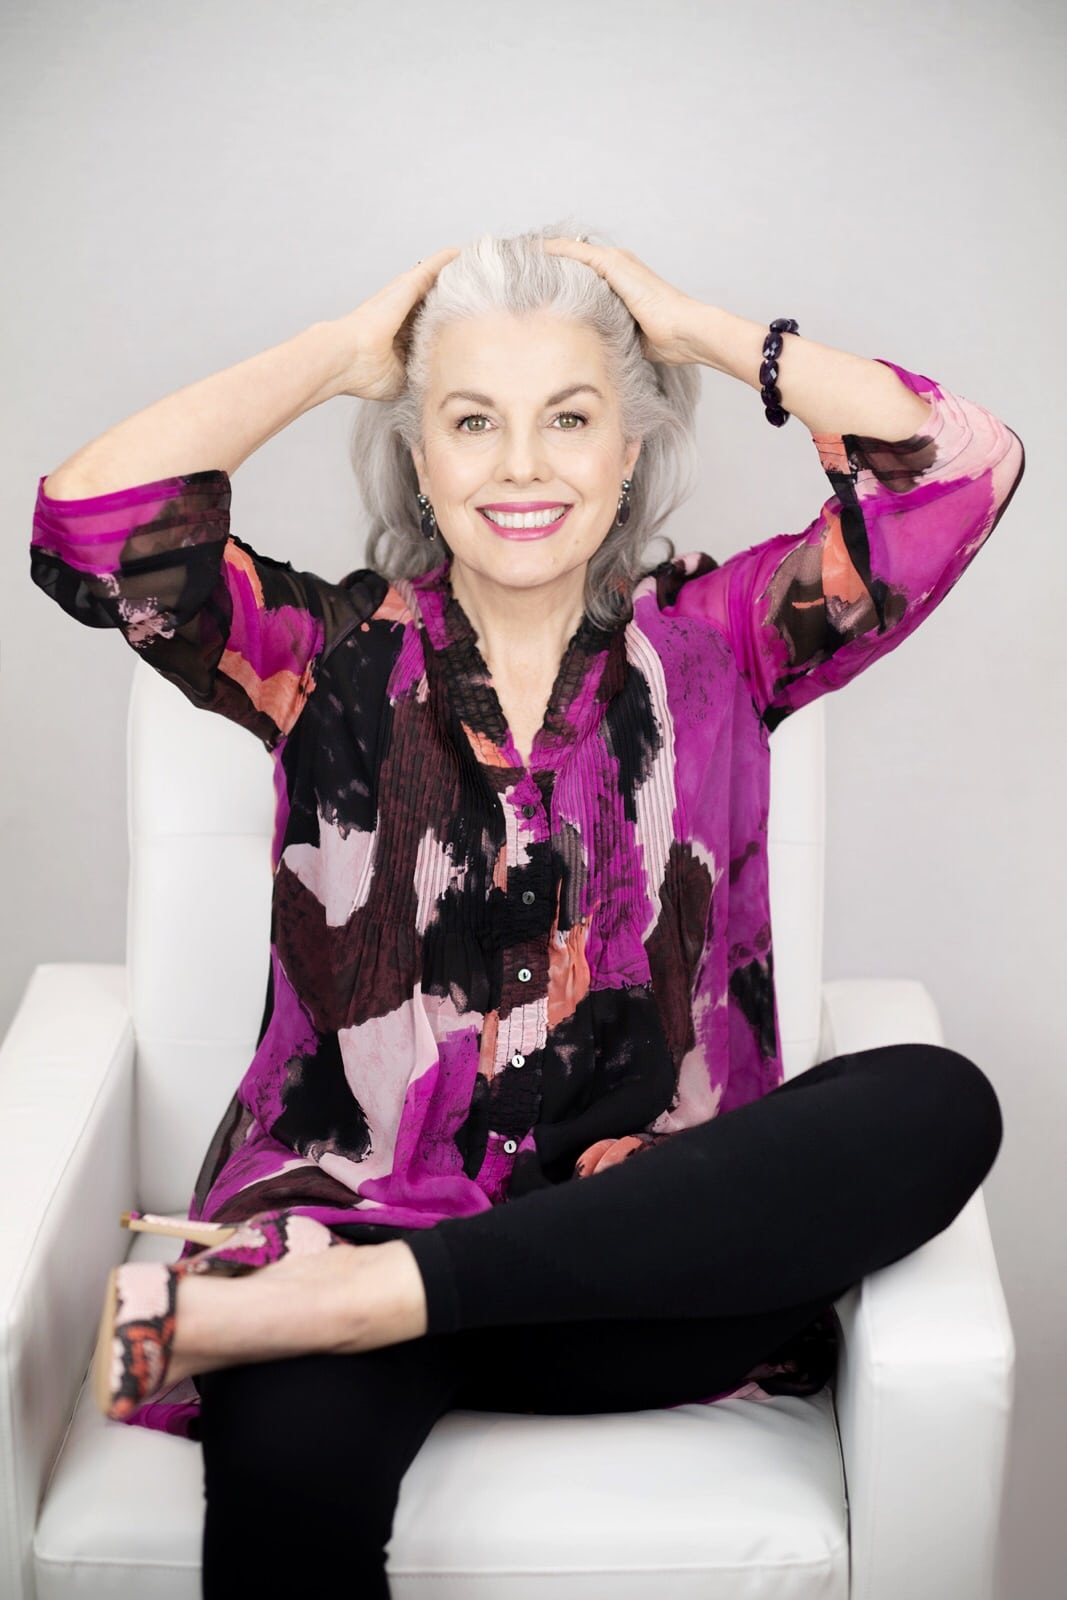 Kerry Lou in Lavender Mosaic shirt on Cindy Hattersley's blog for Ageless Style